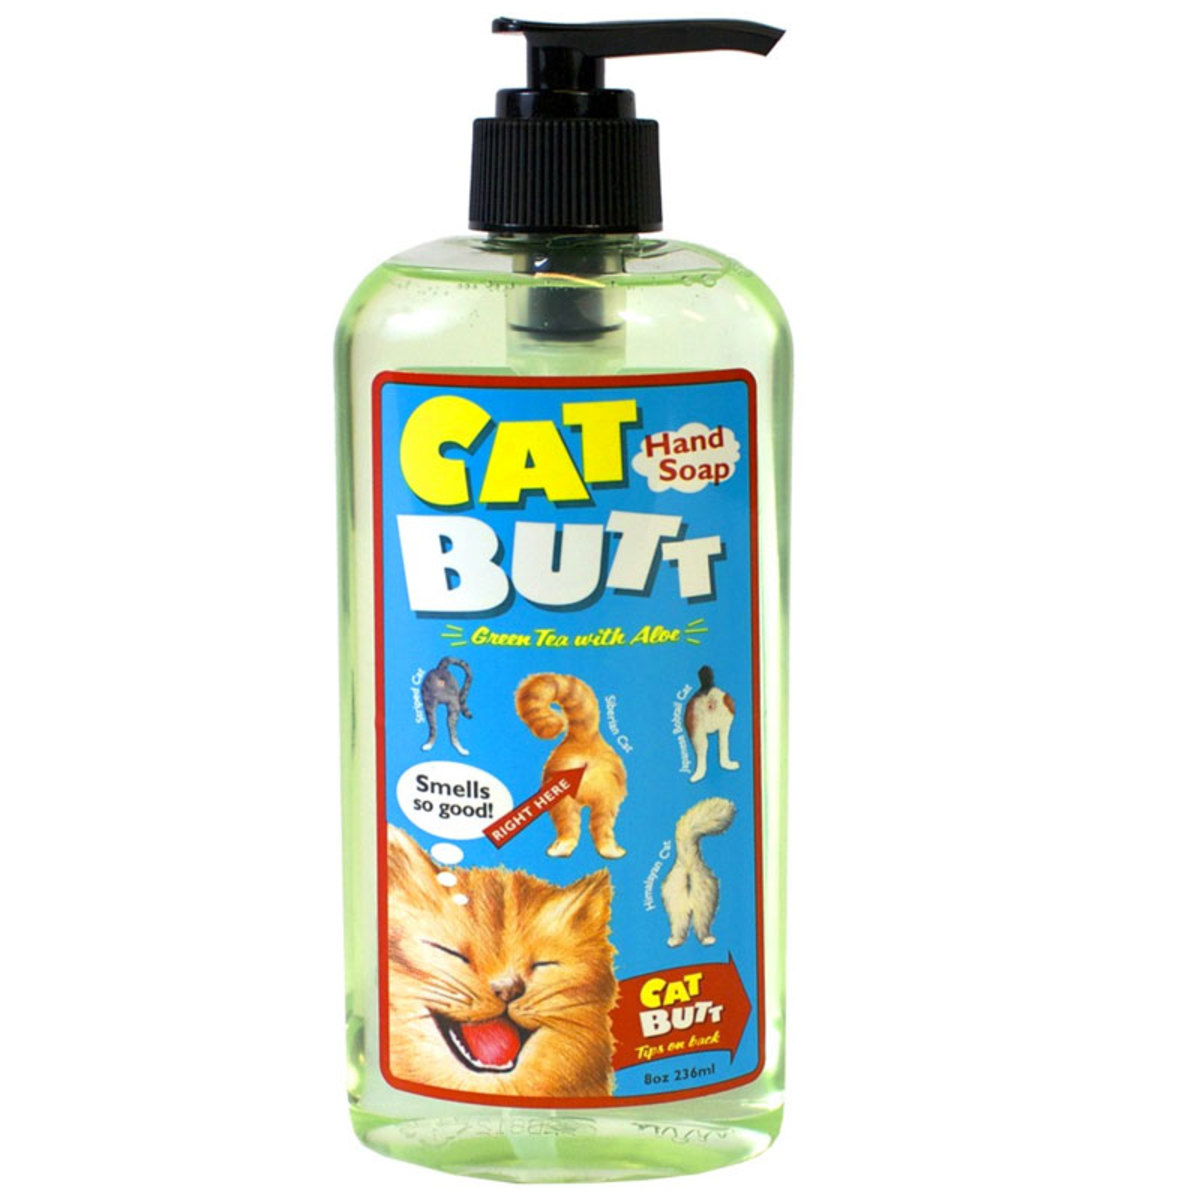 Cat Butt Hand Soap